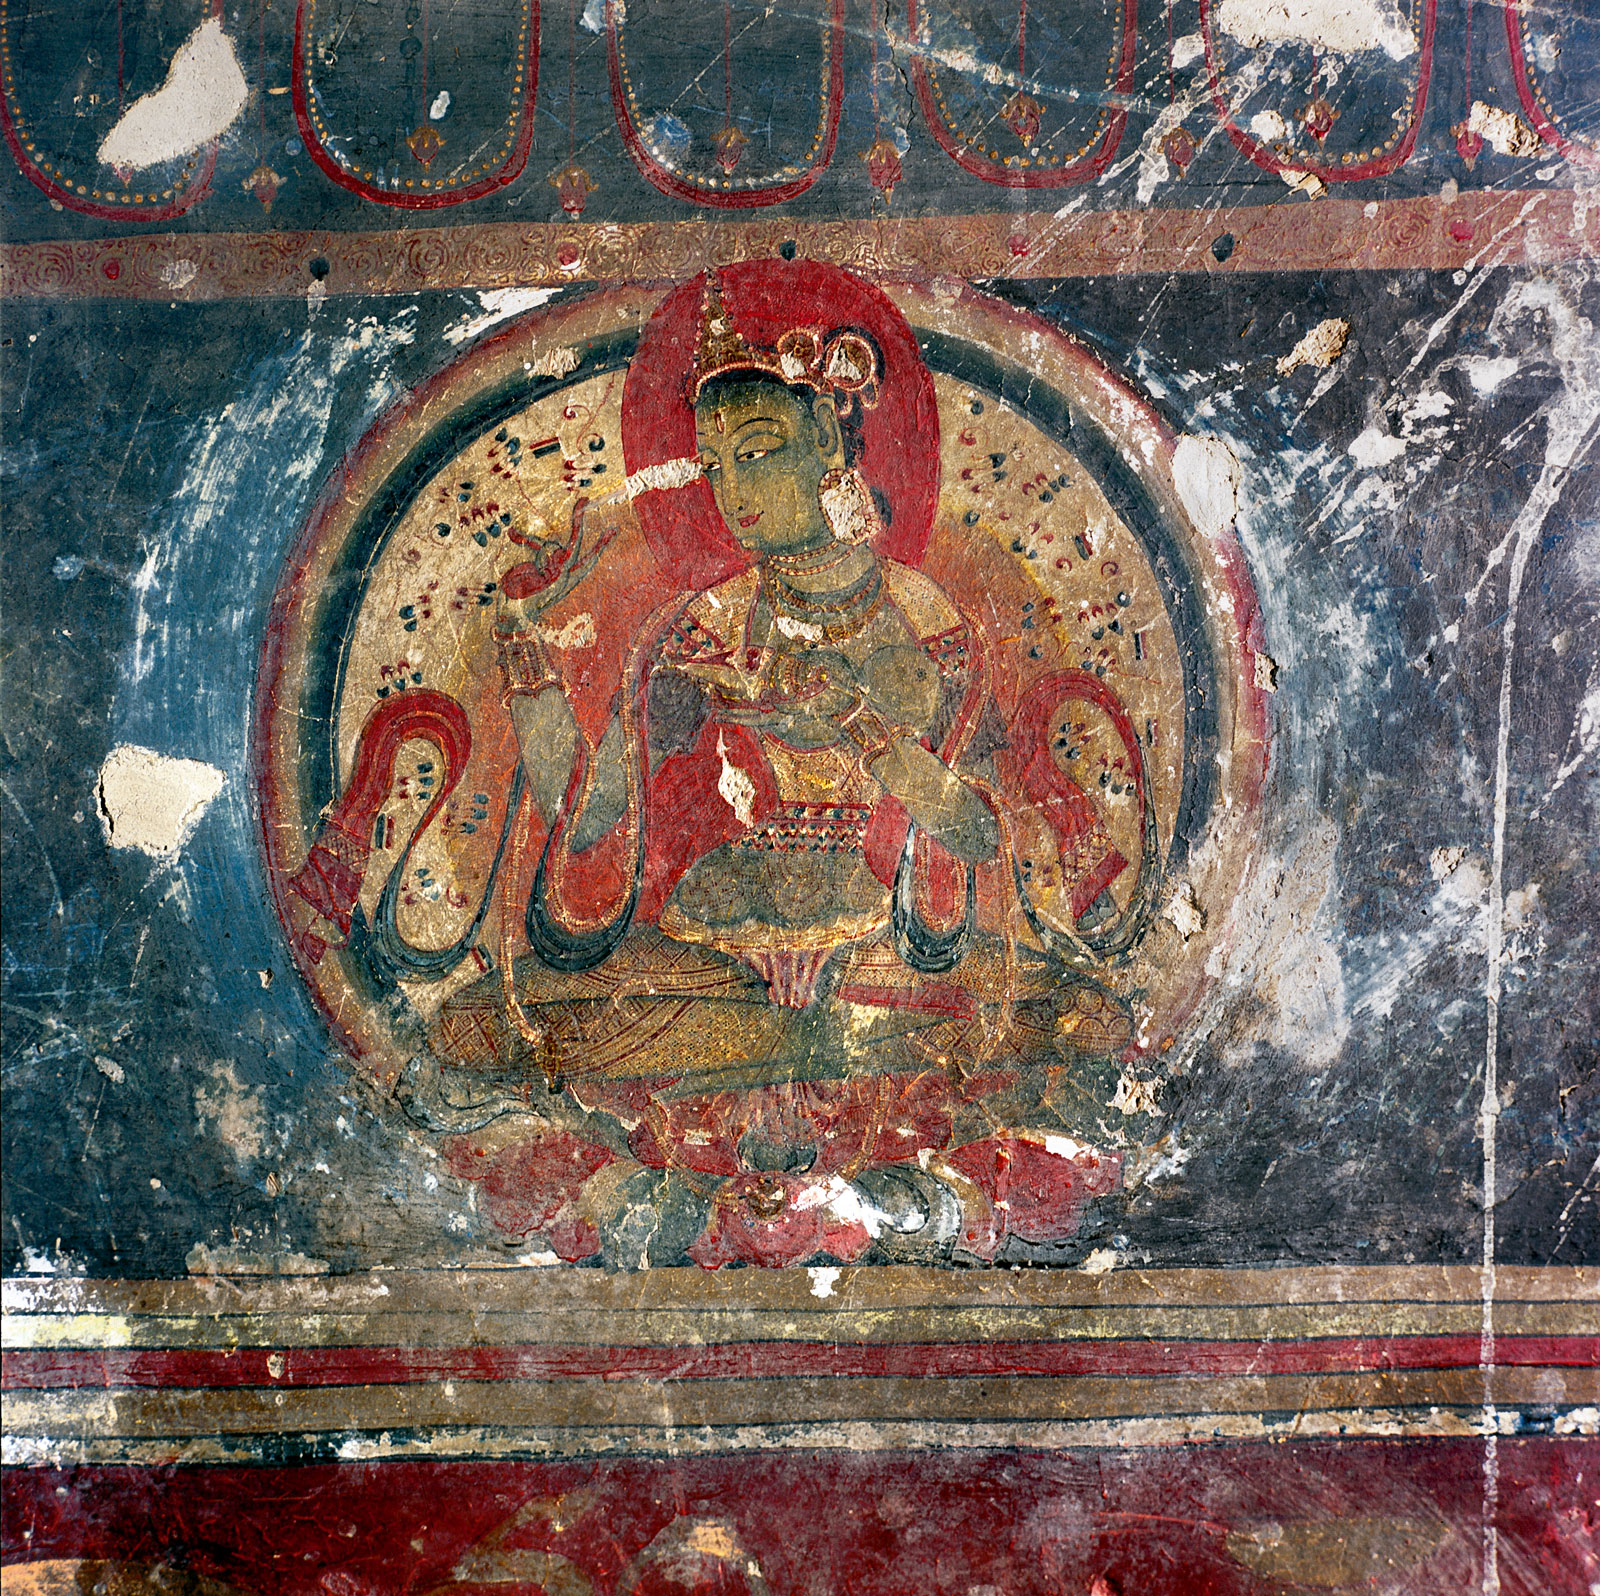 Detail of a wall painting showing the inner offering goddess Gandha holding a shell filled with perfume, Nako, late eleventh or early twelfth century